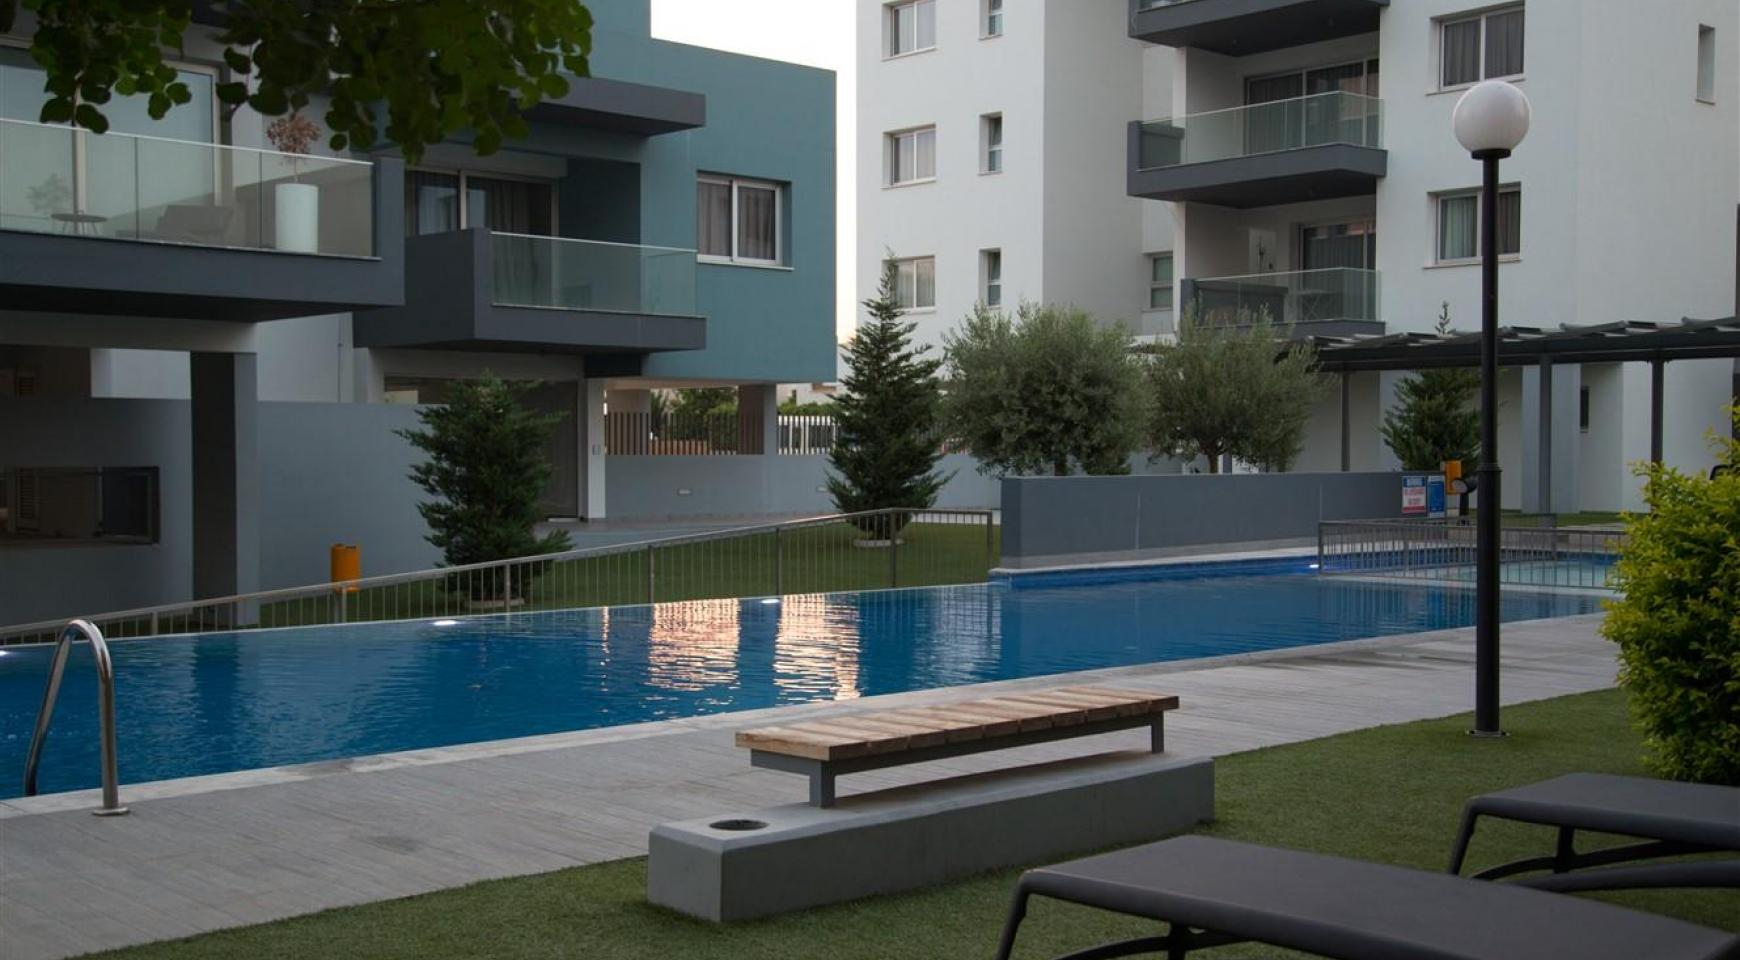 Elite 3 Bedroom Penthouse with private Swimming Pool on the Roof - 15